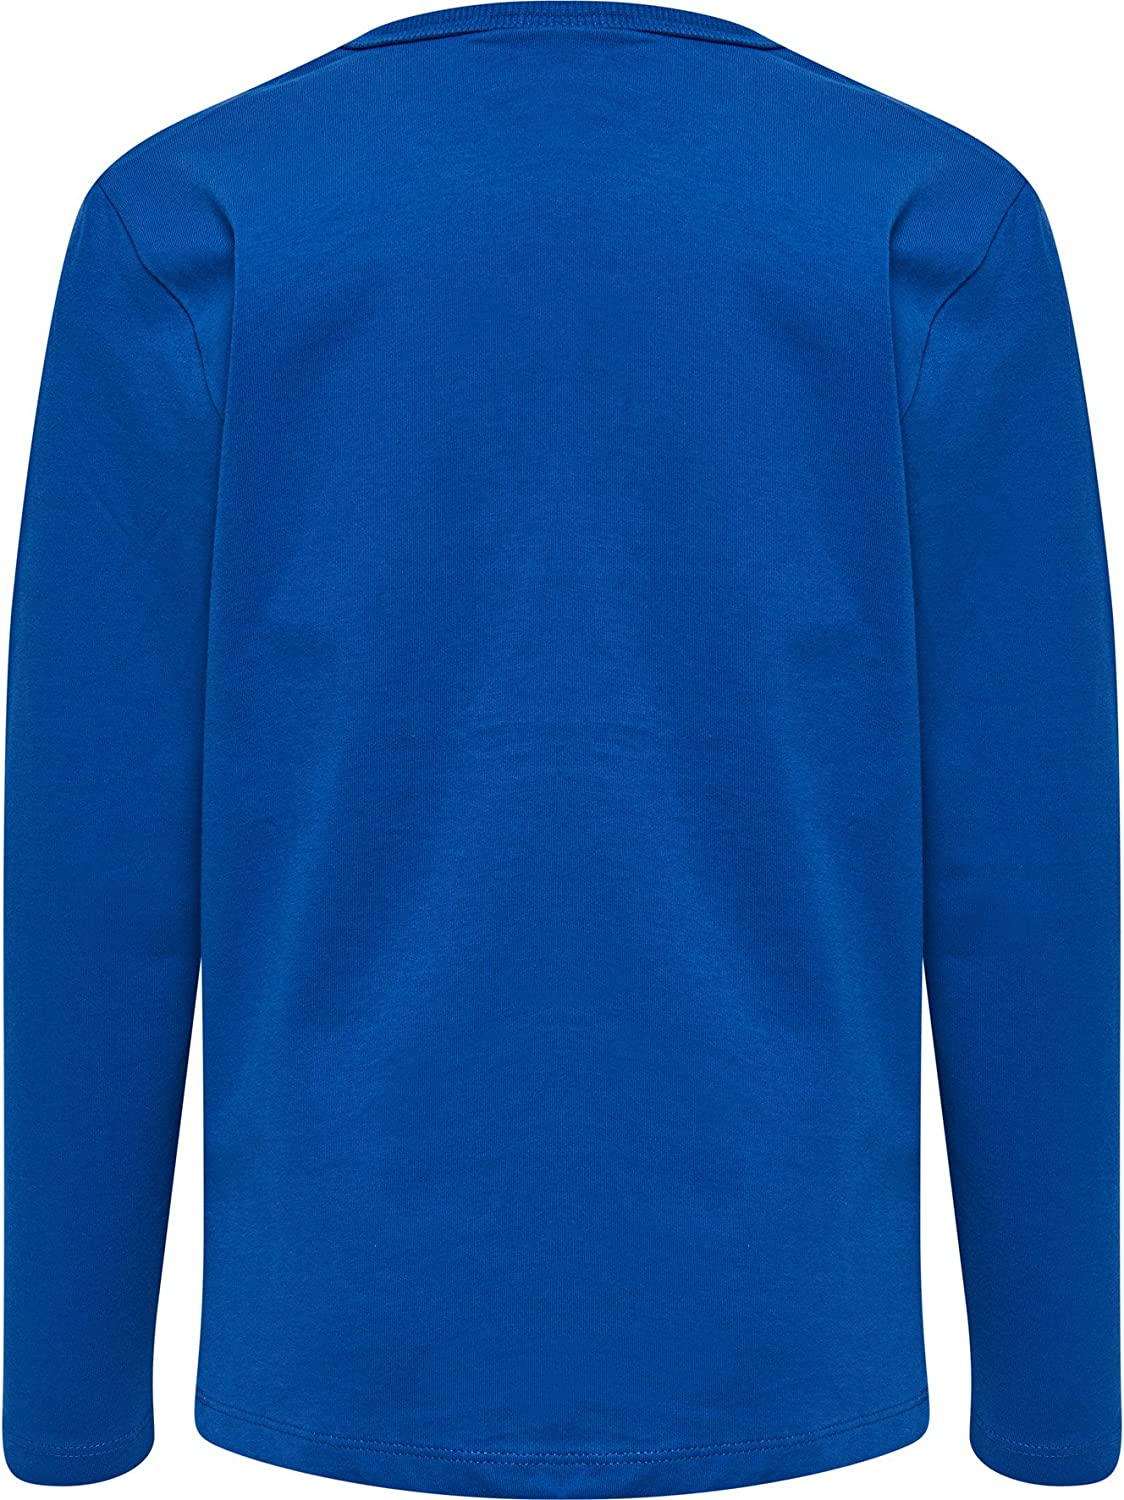 Lego Wear Boys Long Sleeve Top